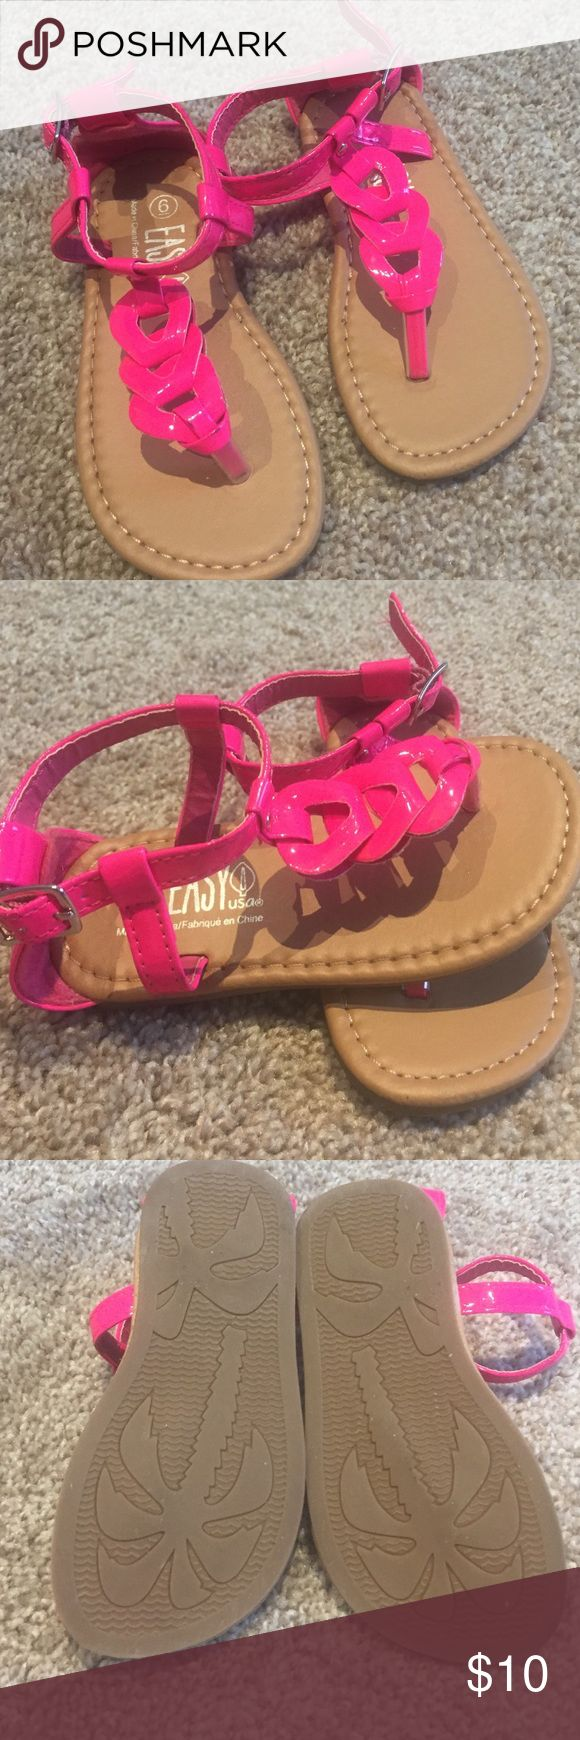 Toddler size 6 neon sandals. Super cute bright neon sandals!  Pink color with tan base.  Made by Easy USA Easy USA Shoes Sandals & Flip Flops